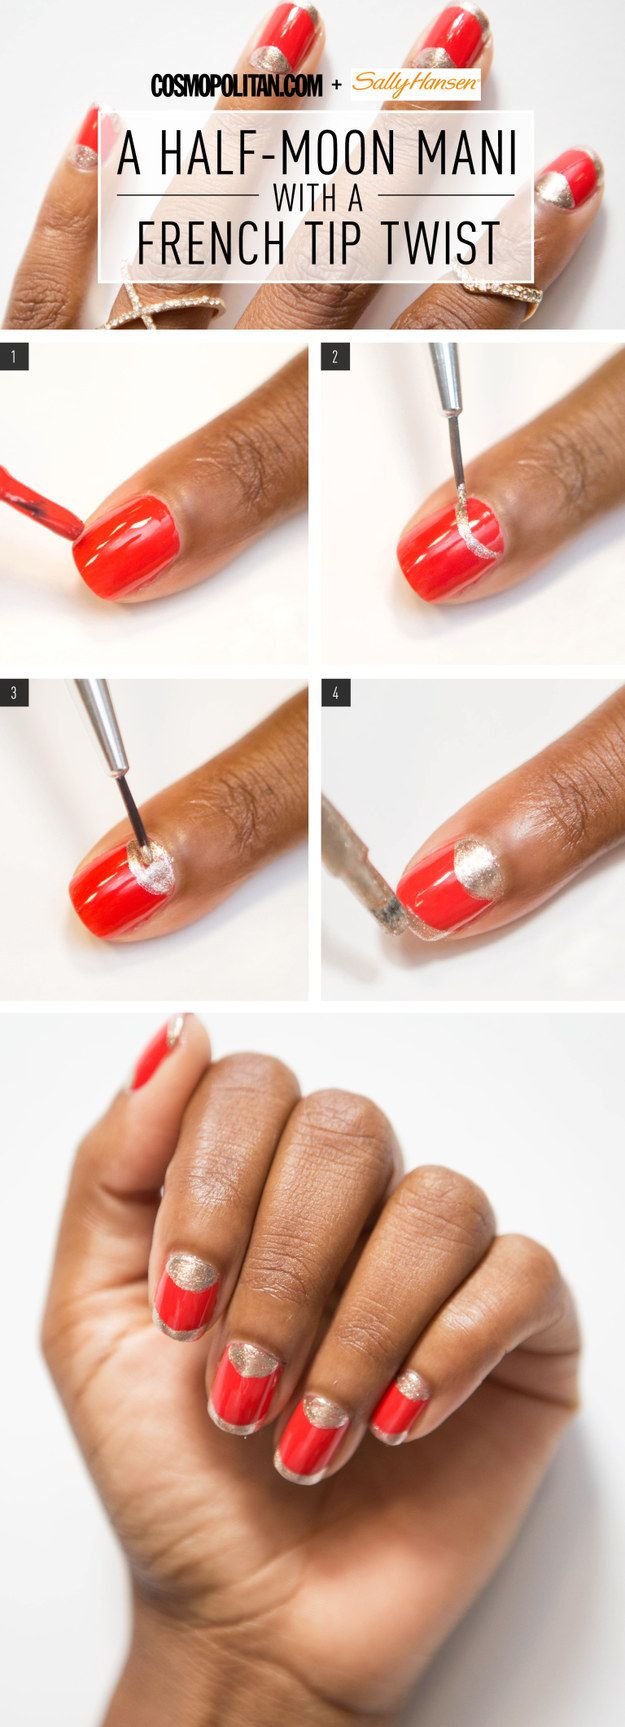 Half-Moon Mani With a French Tip Twist // {20 Nail Tutorials}